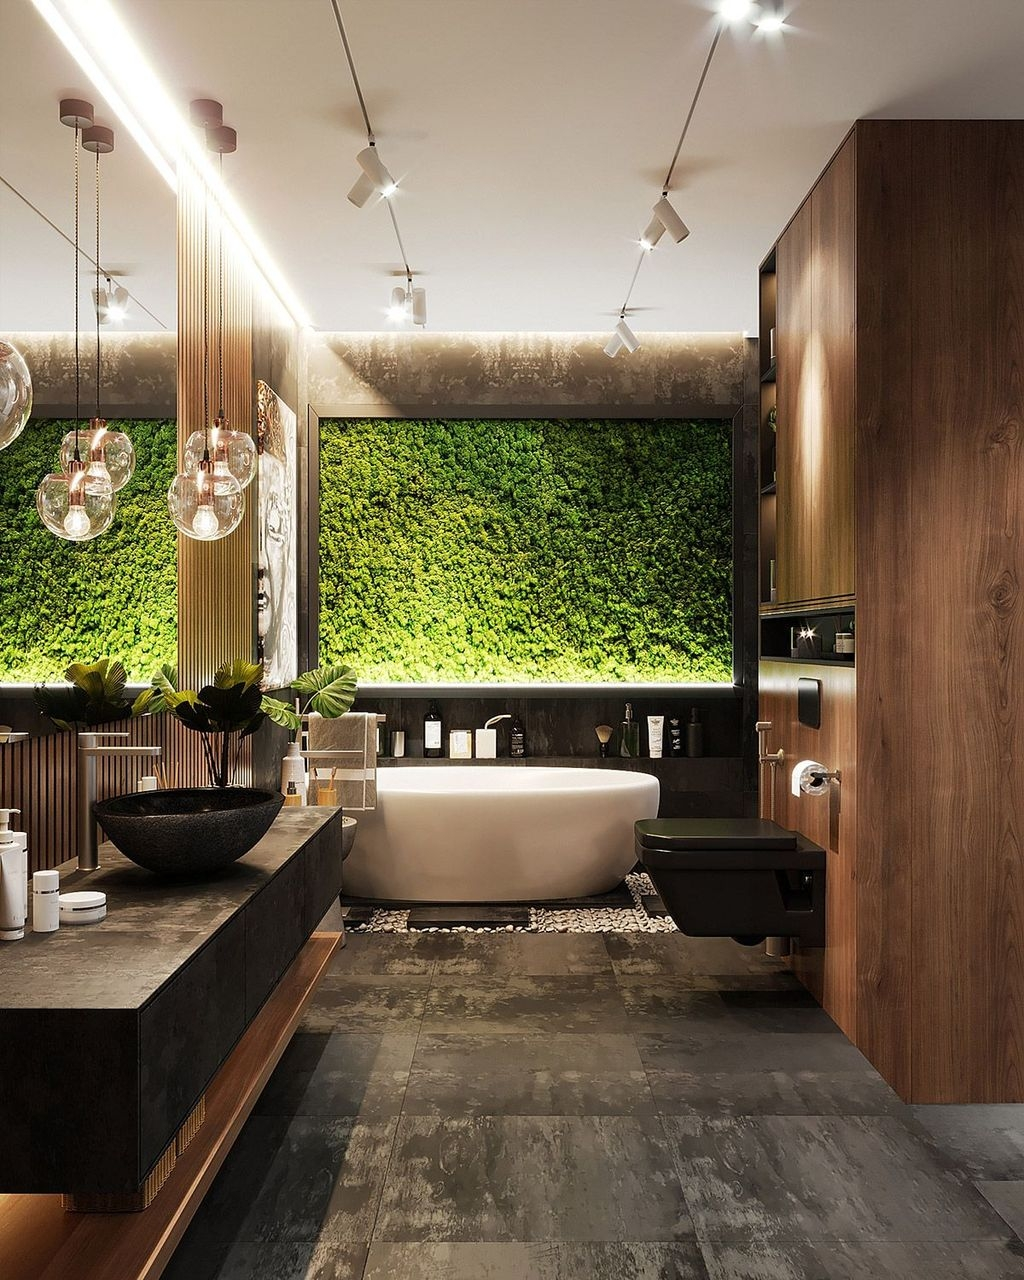 Amazing Bathroom Designs Ideas To Try Right Now29